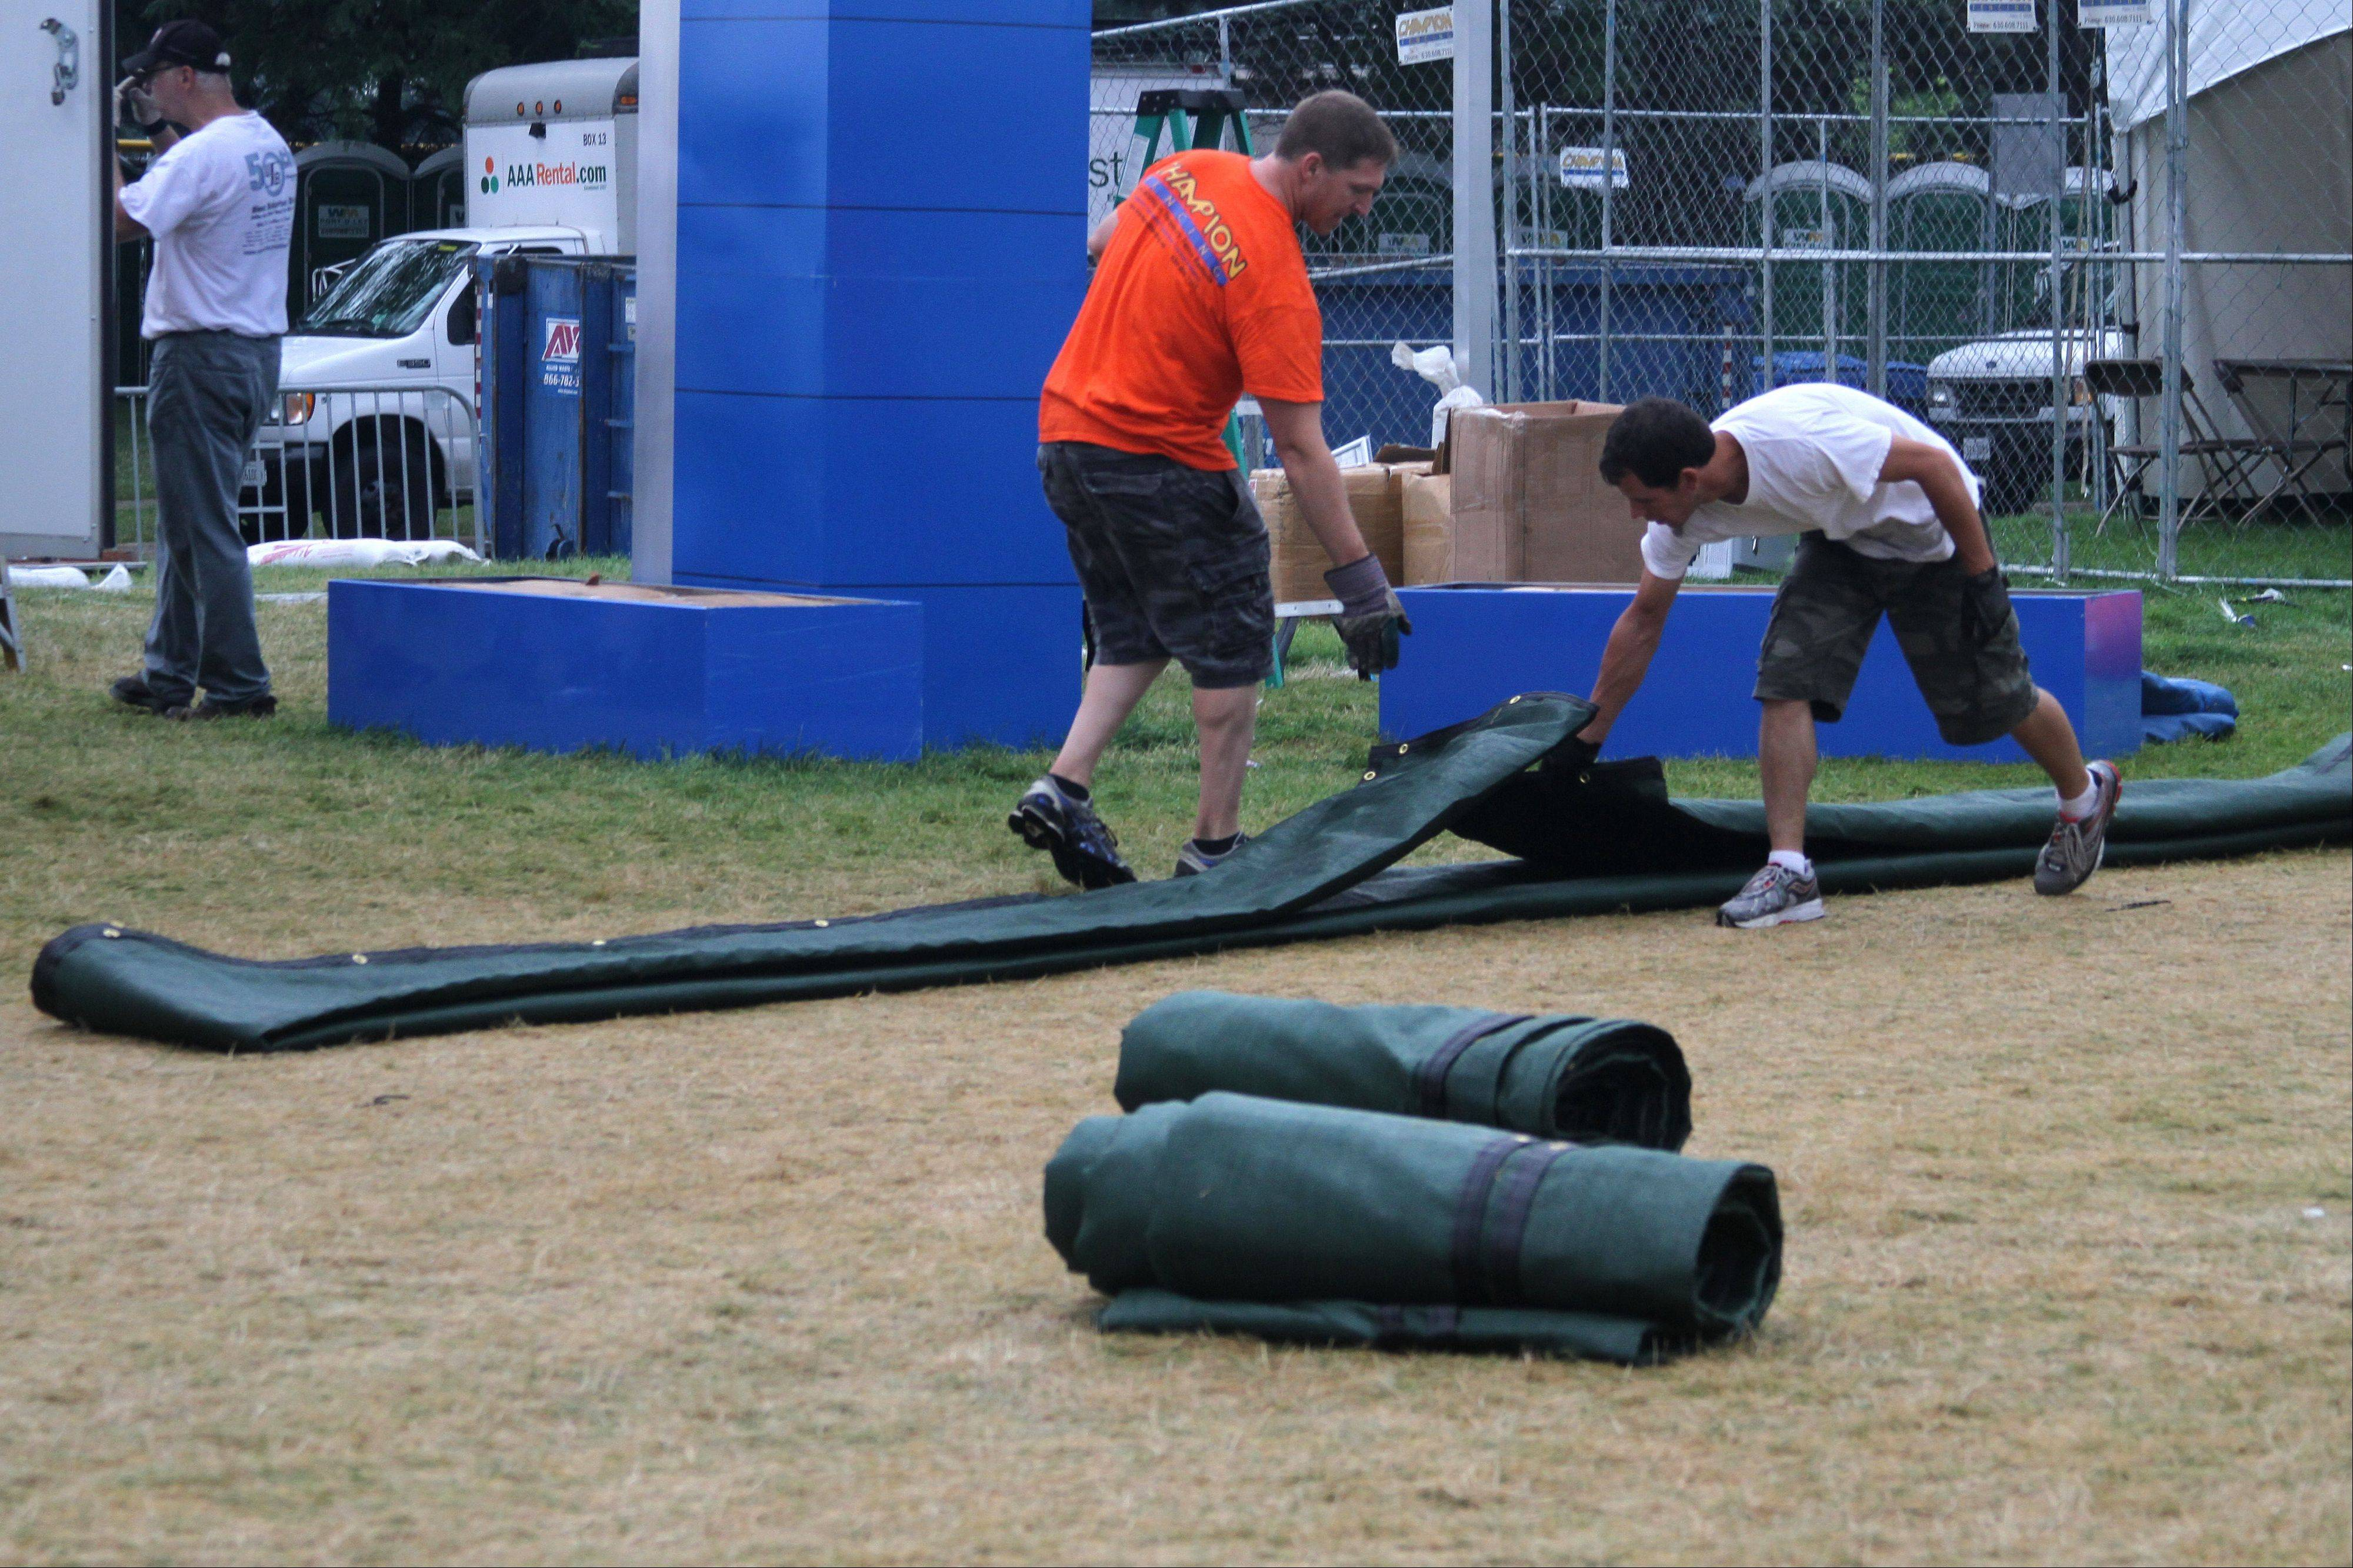 Crews roll up a tarp Monday as a part of Ribfest cleanup at Knoch Park in Naperville.